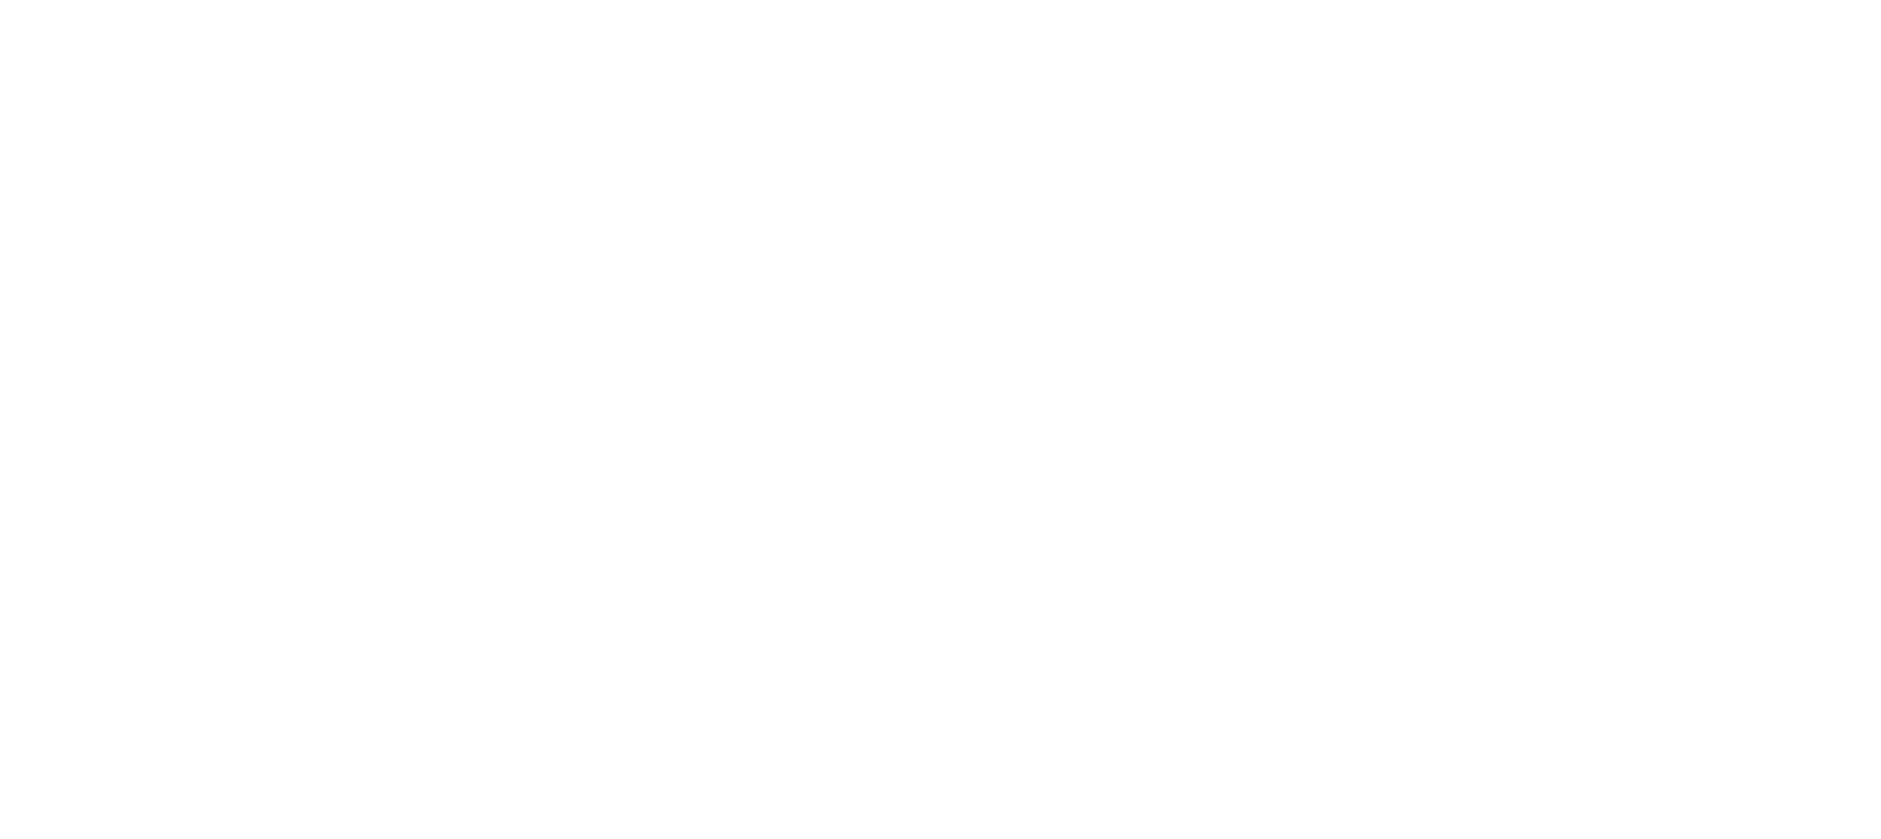 enders Marketing Leistungen Tagcloud